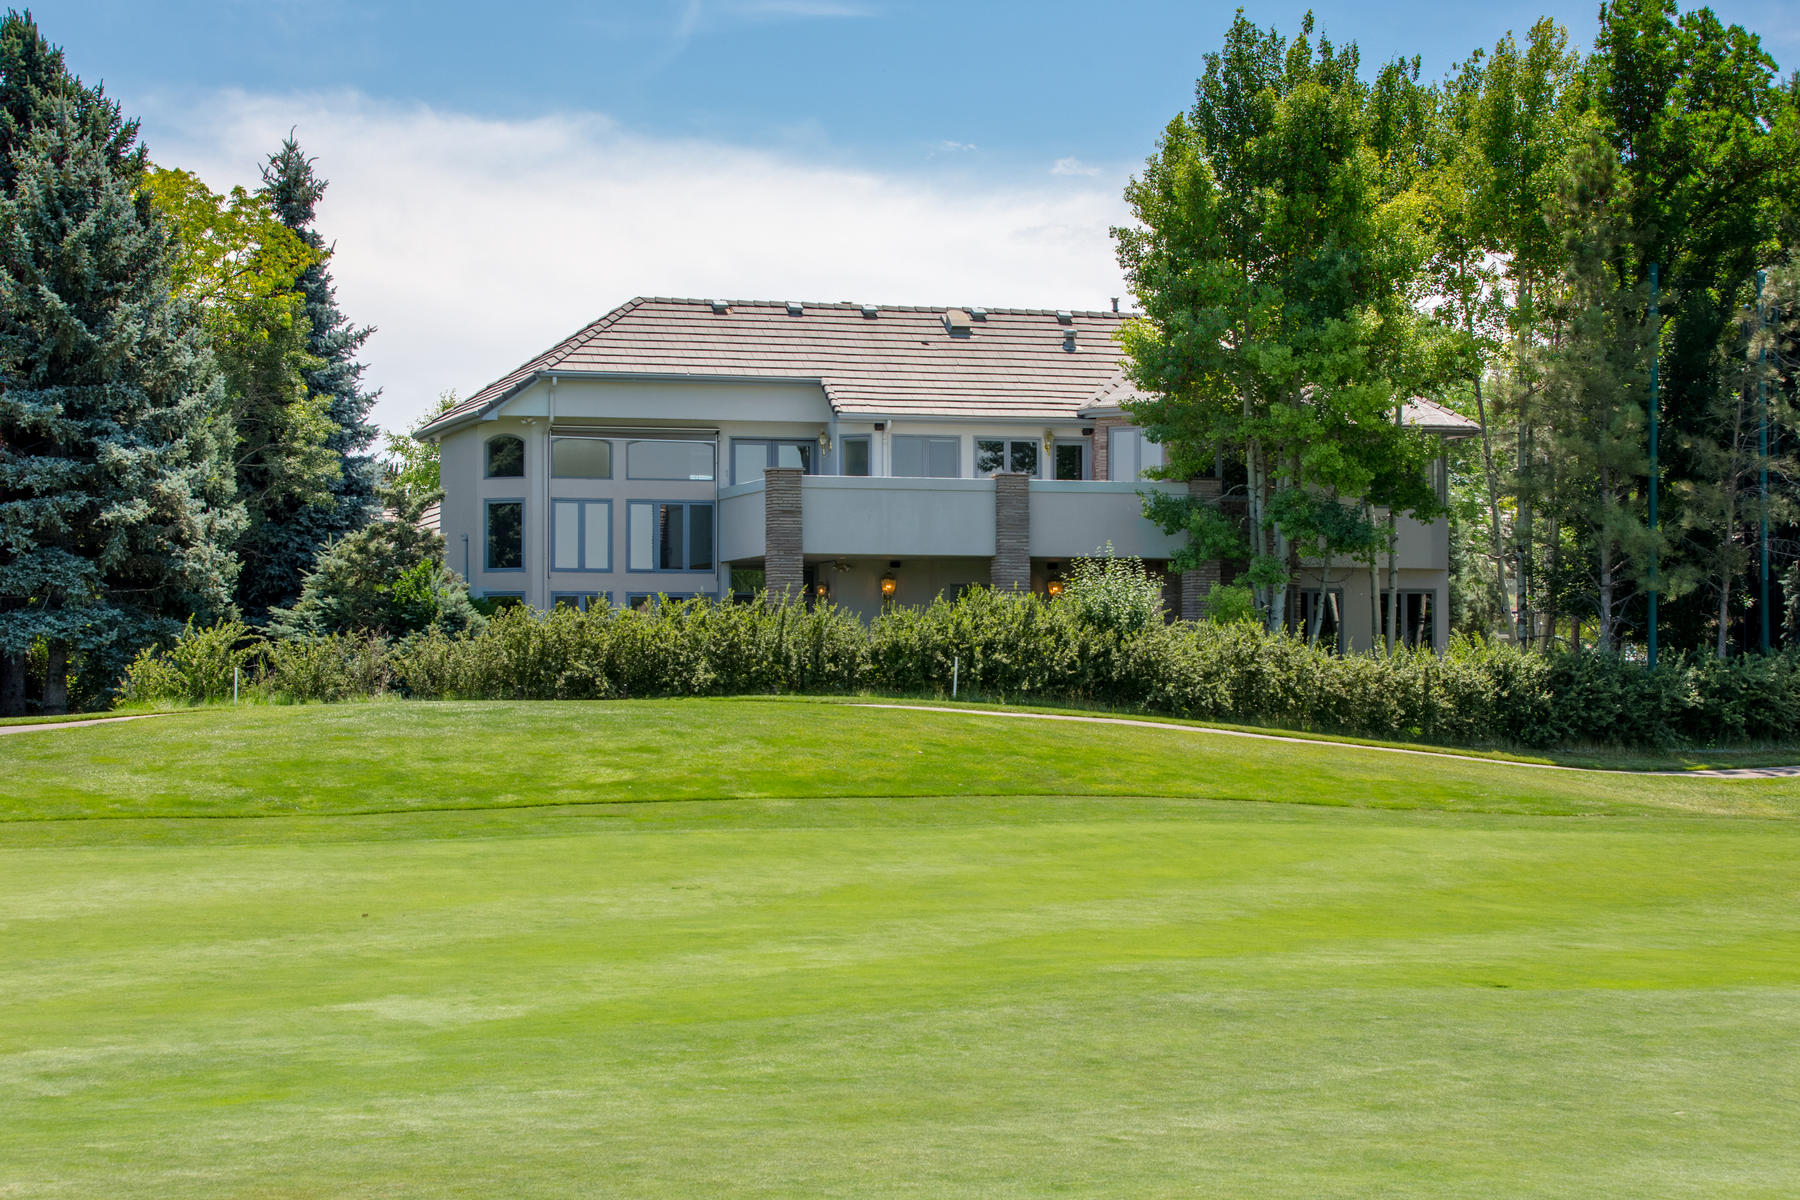 Single Family Home for Active at Exceptional Mountain Views Await In Cherry Hills Village! 23 Glenmoor Dr Cherry Hills Village, Colorado 80113 United States